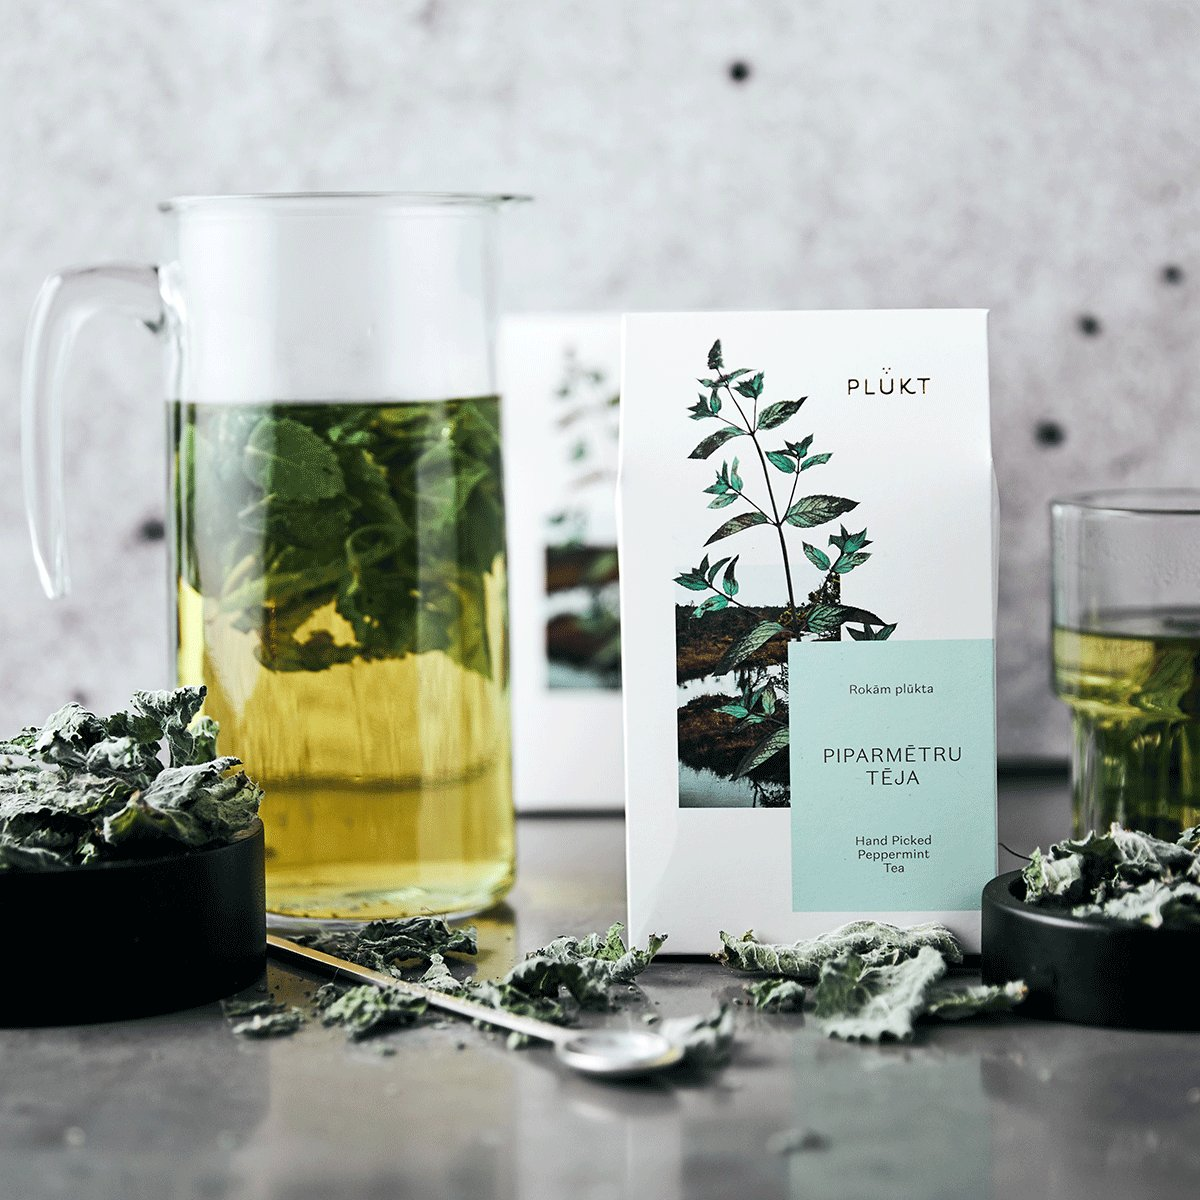 plukt tea - freyr and fell - peppermint tea - herbal tea - sustainable living - natural home - wellbeing